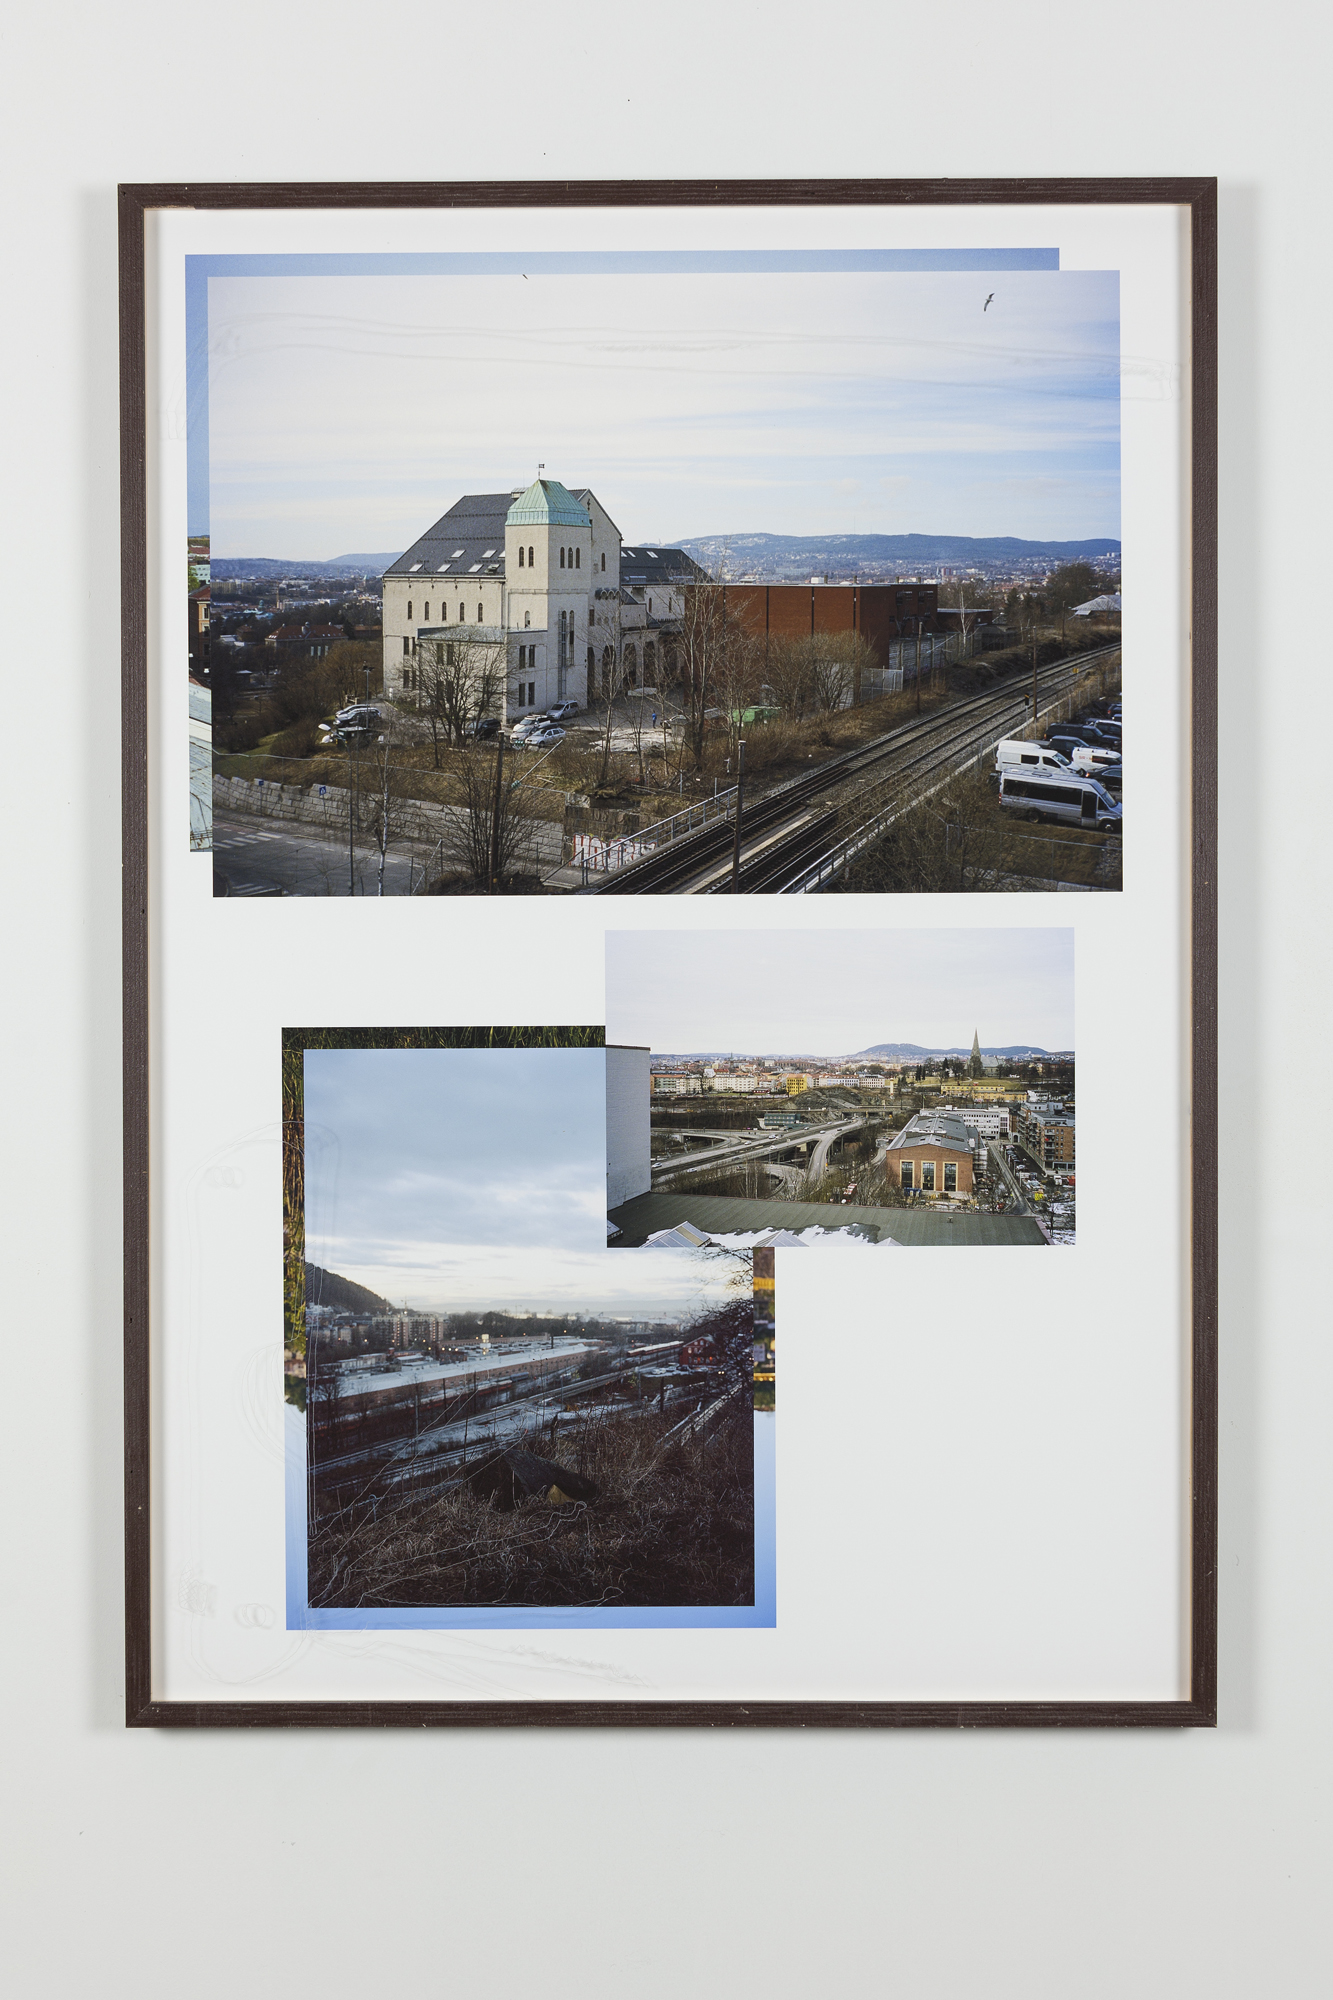 Jon Benjamin Tallerås, Untitled (Lock Picking is Key) V, 2019, inkjet print, scratched ar-glass, artist made frame, 63 x 90 cm, unique